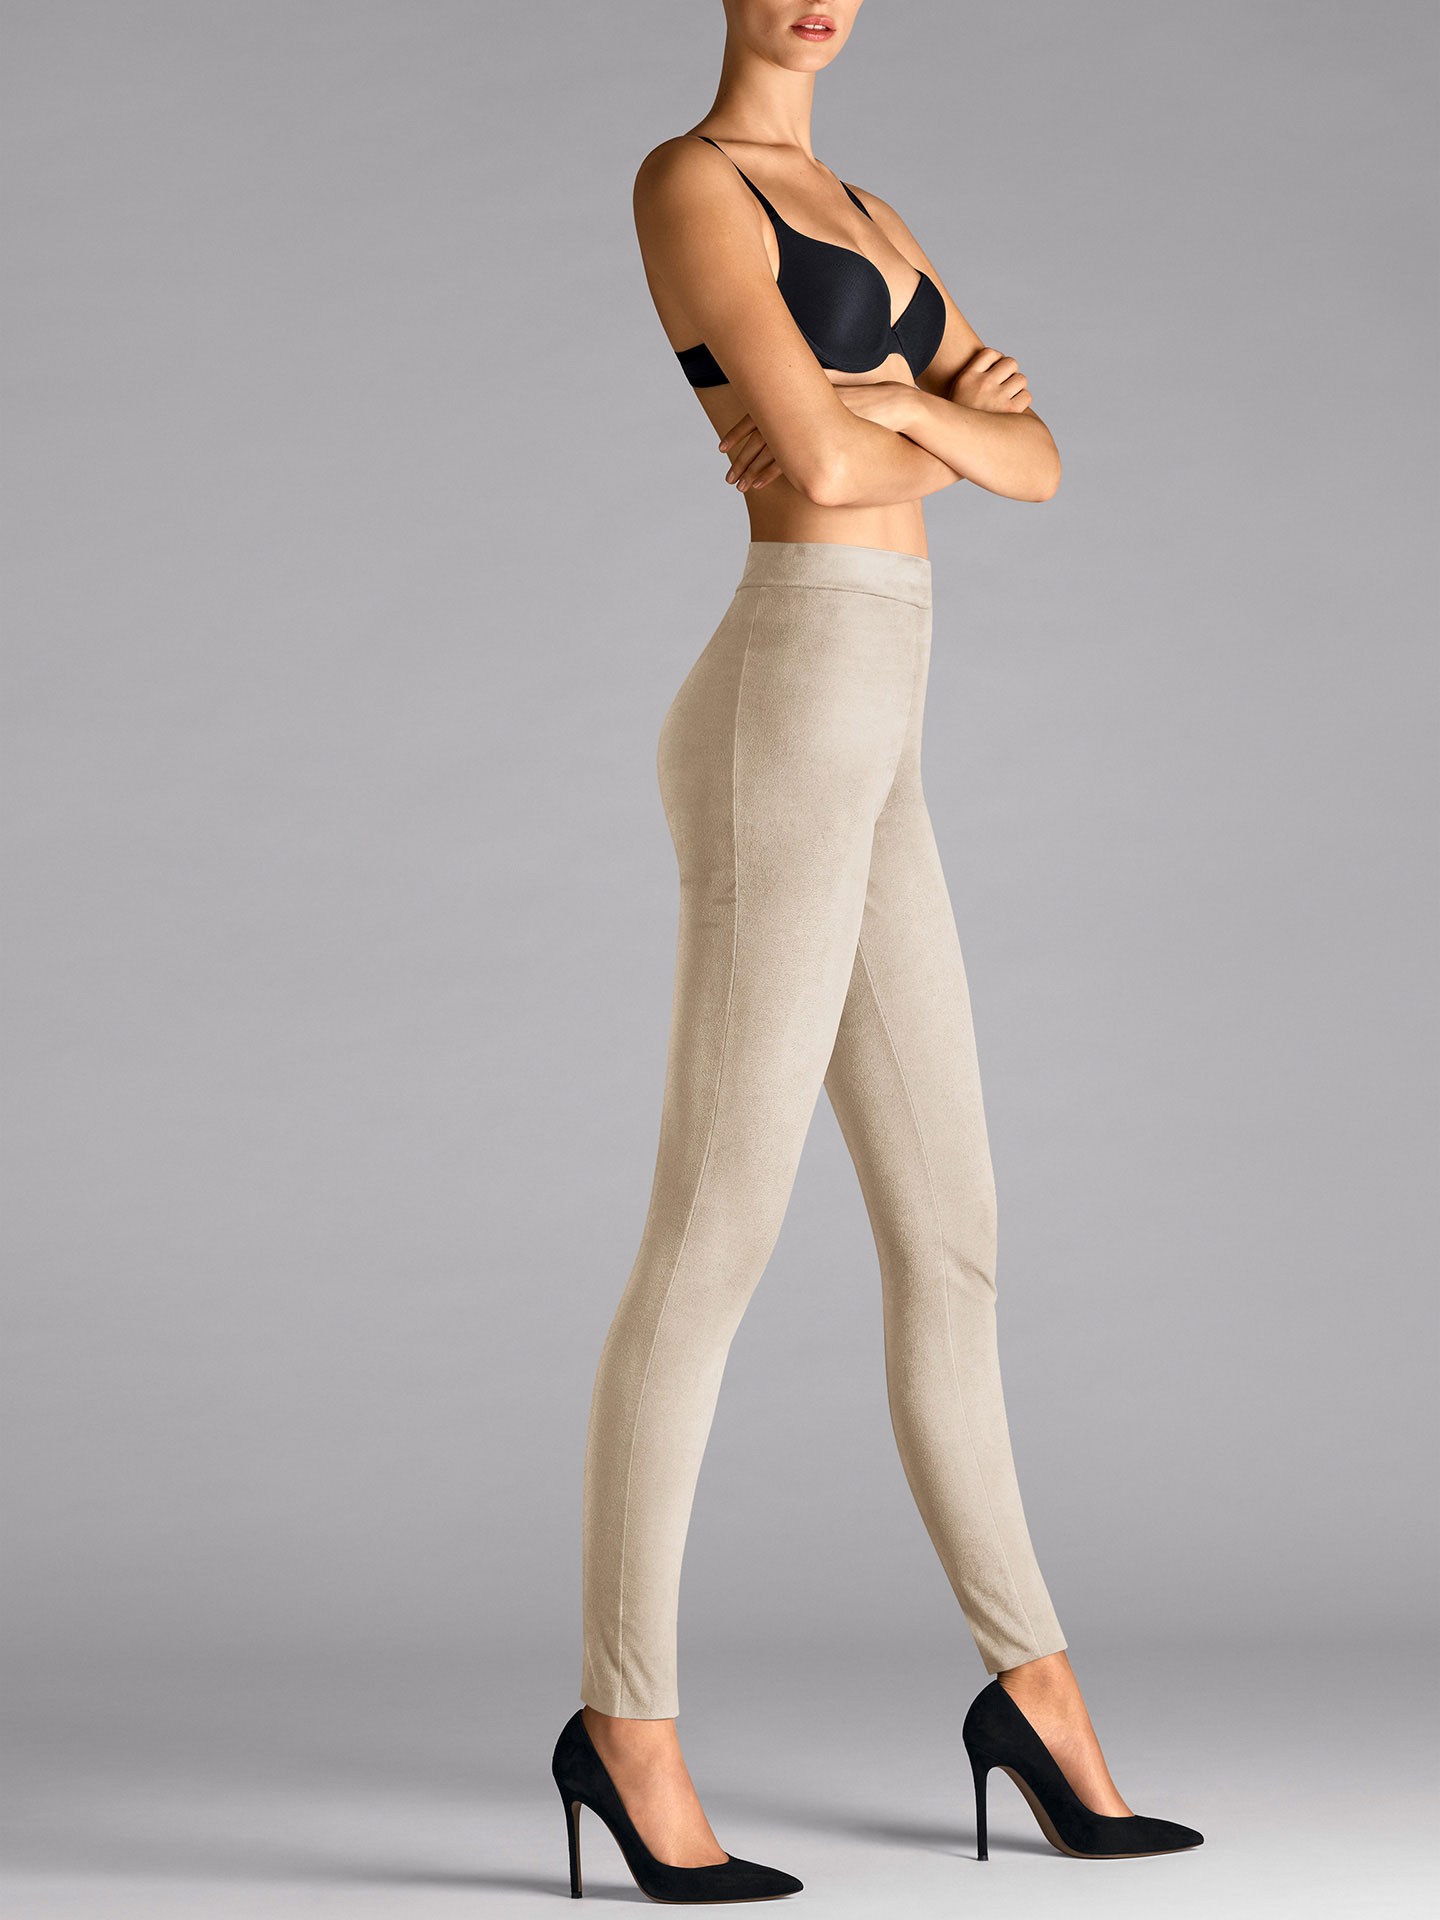 Velour Leggings - 8544 - 38